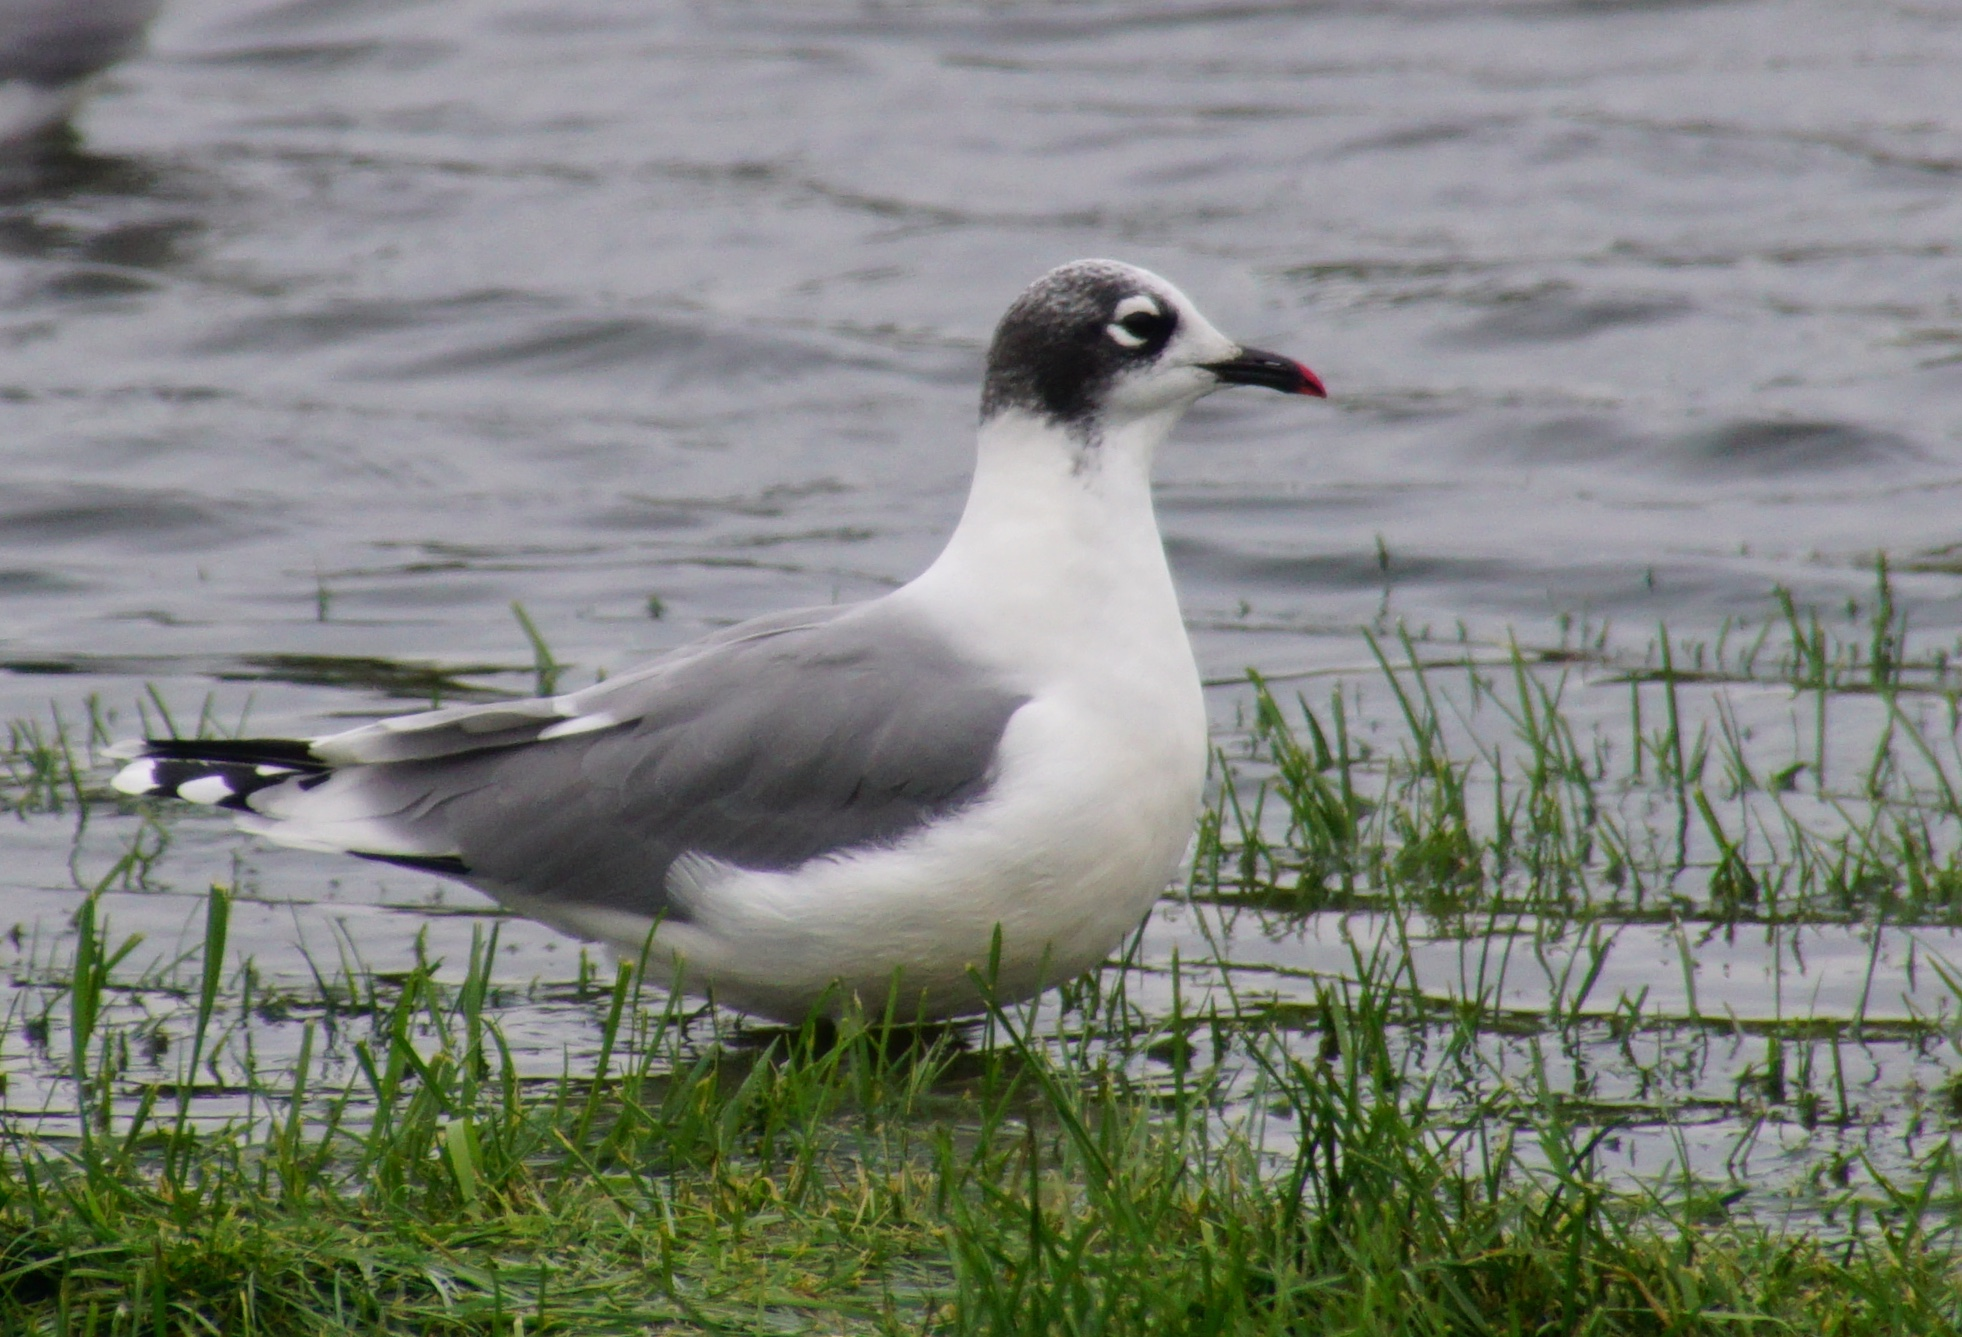 The Franklin's gull was named after Sir John Franklin, an Arctic explorer.